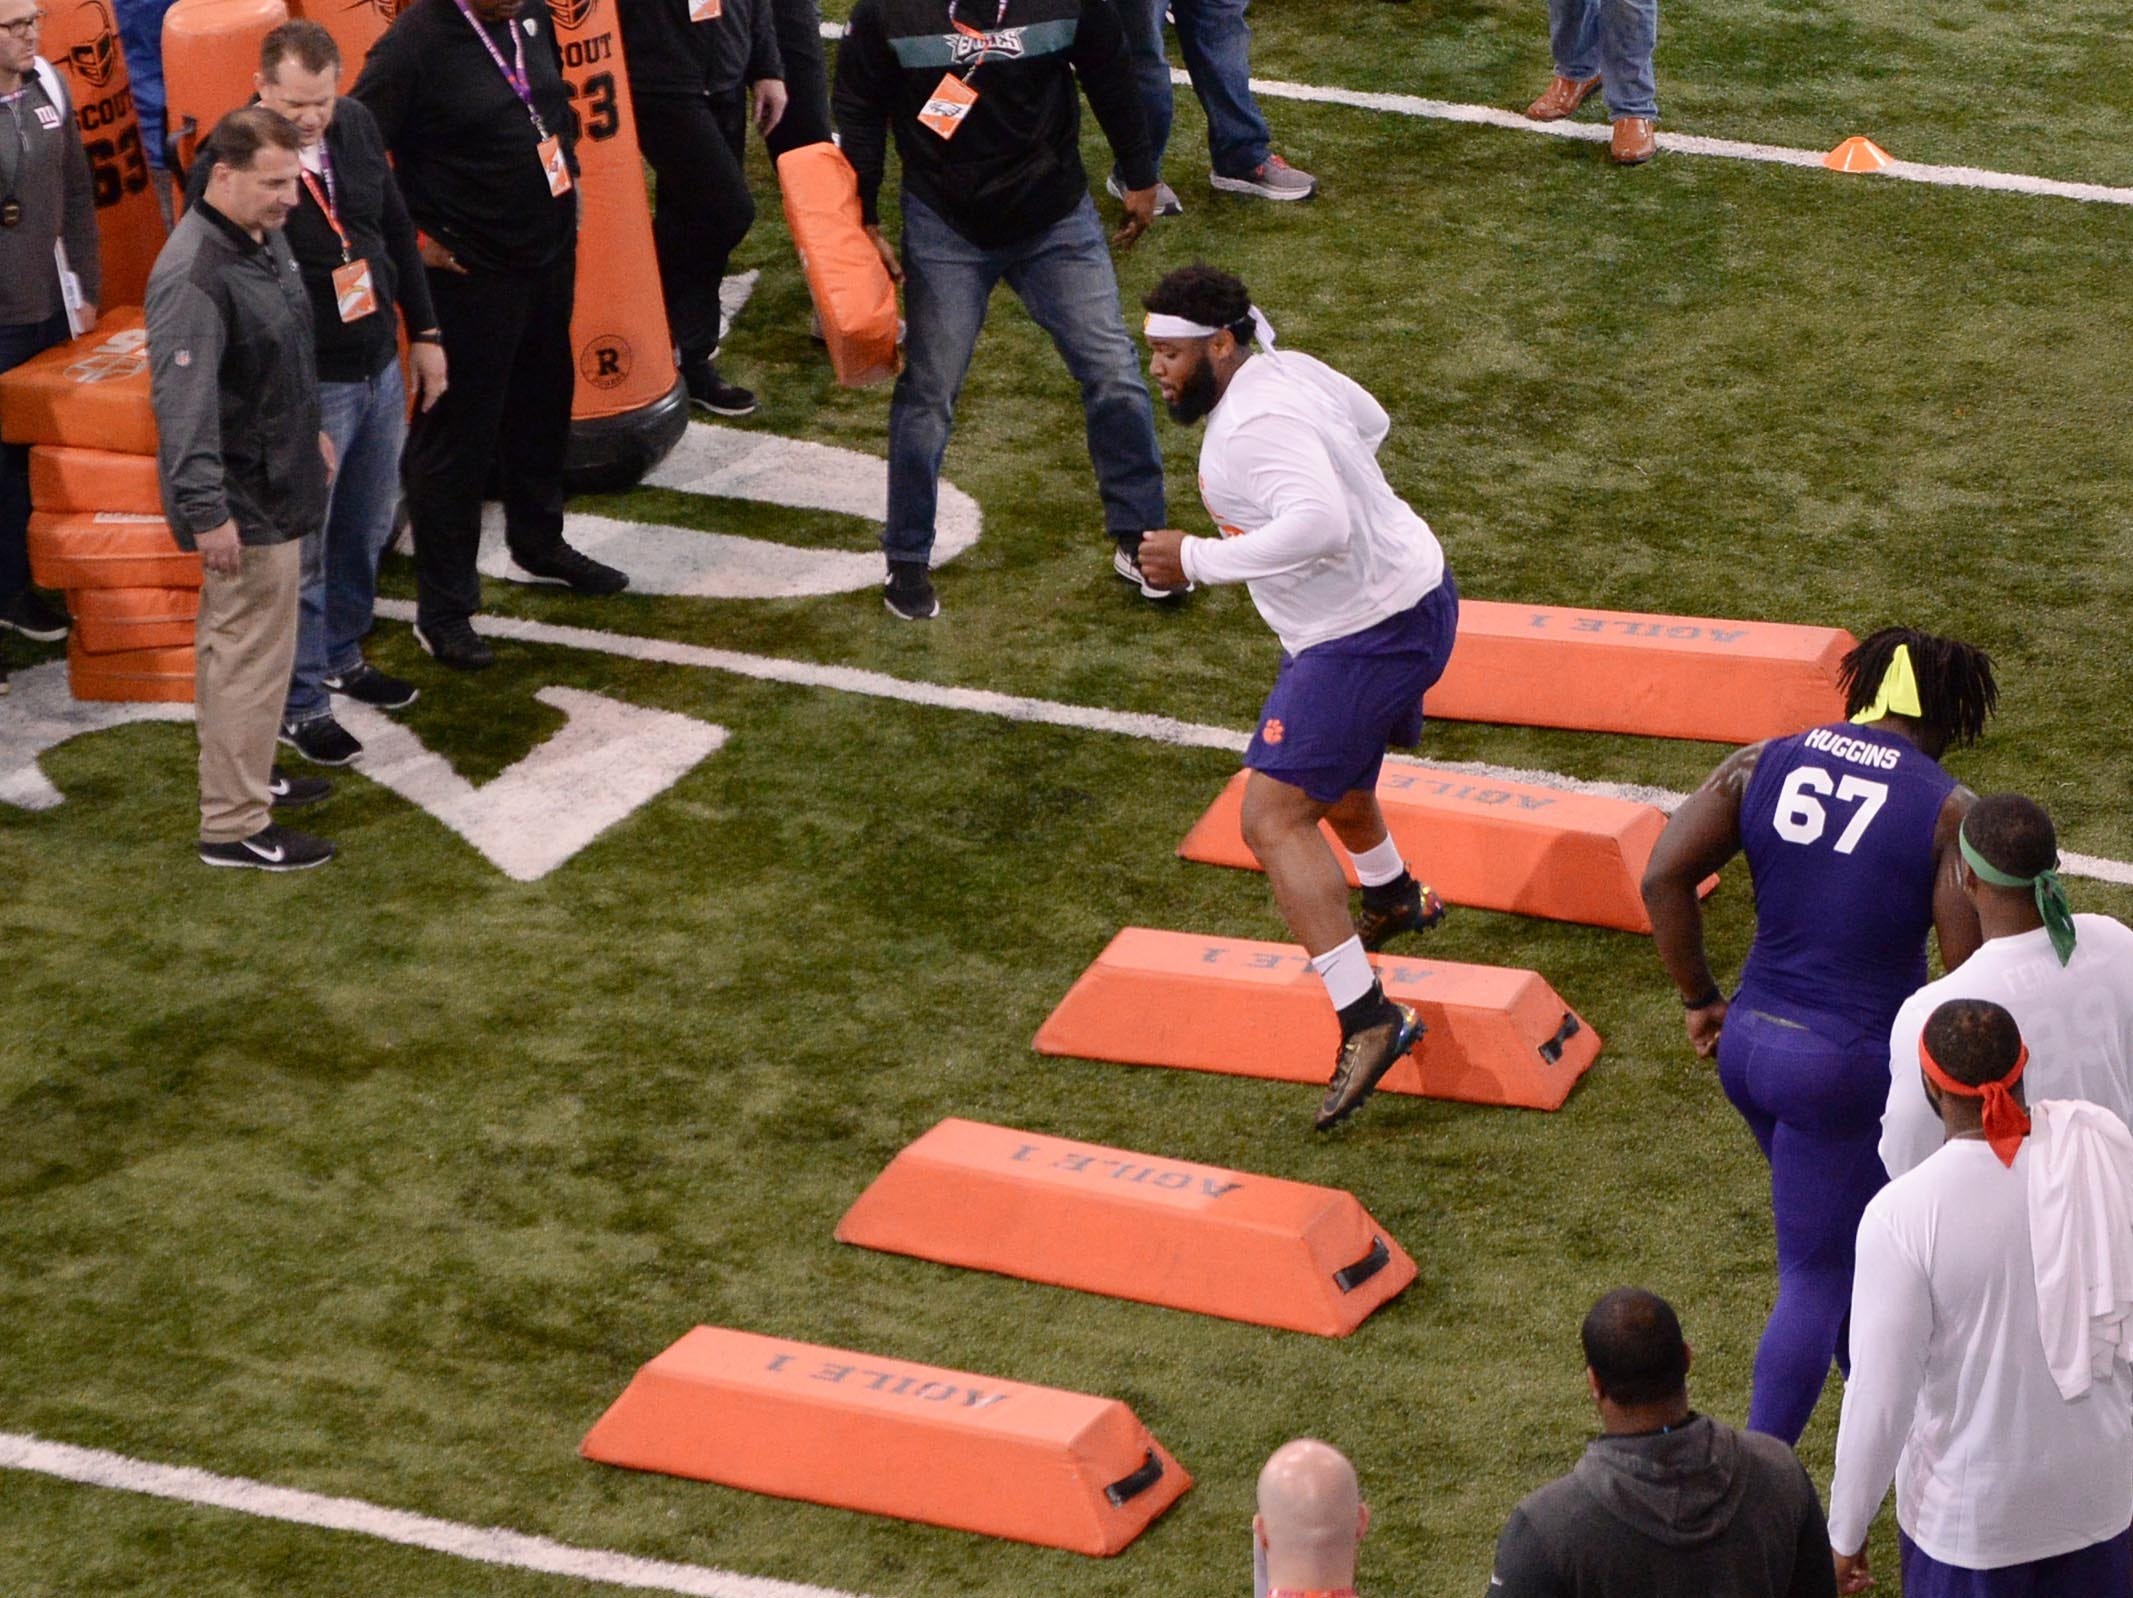 Defensive lineman Christian Wilkins runs during Clemson pro day at the Poe Indoor Facility in Clemson Thursday, March 14, 2019.